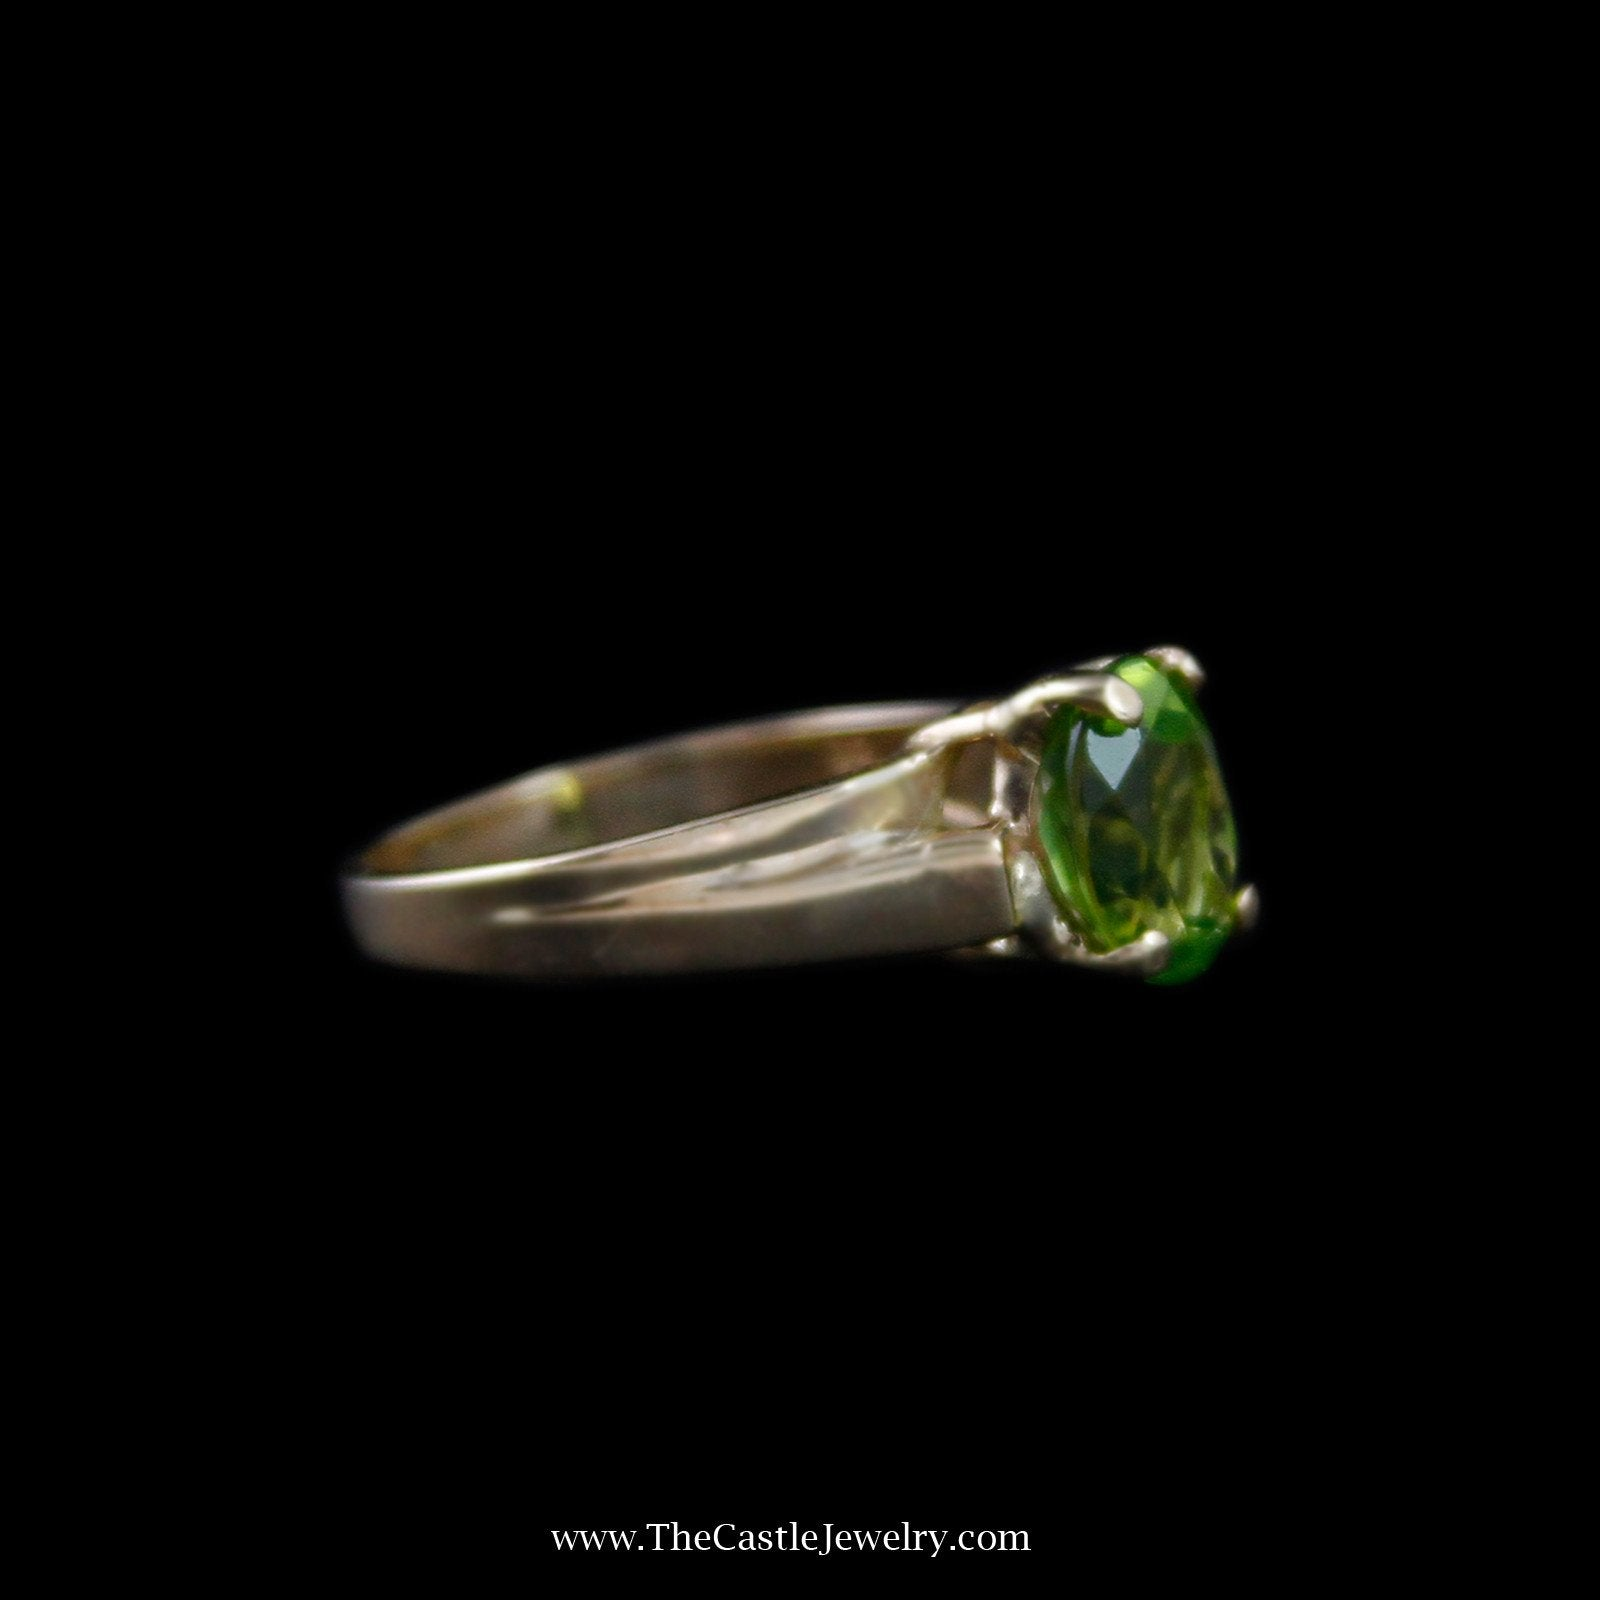 Charming Oval Peridot Solitaire Gemstone Ring in 14k Yellow Gold-2